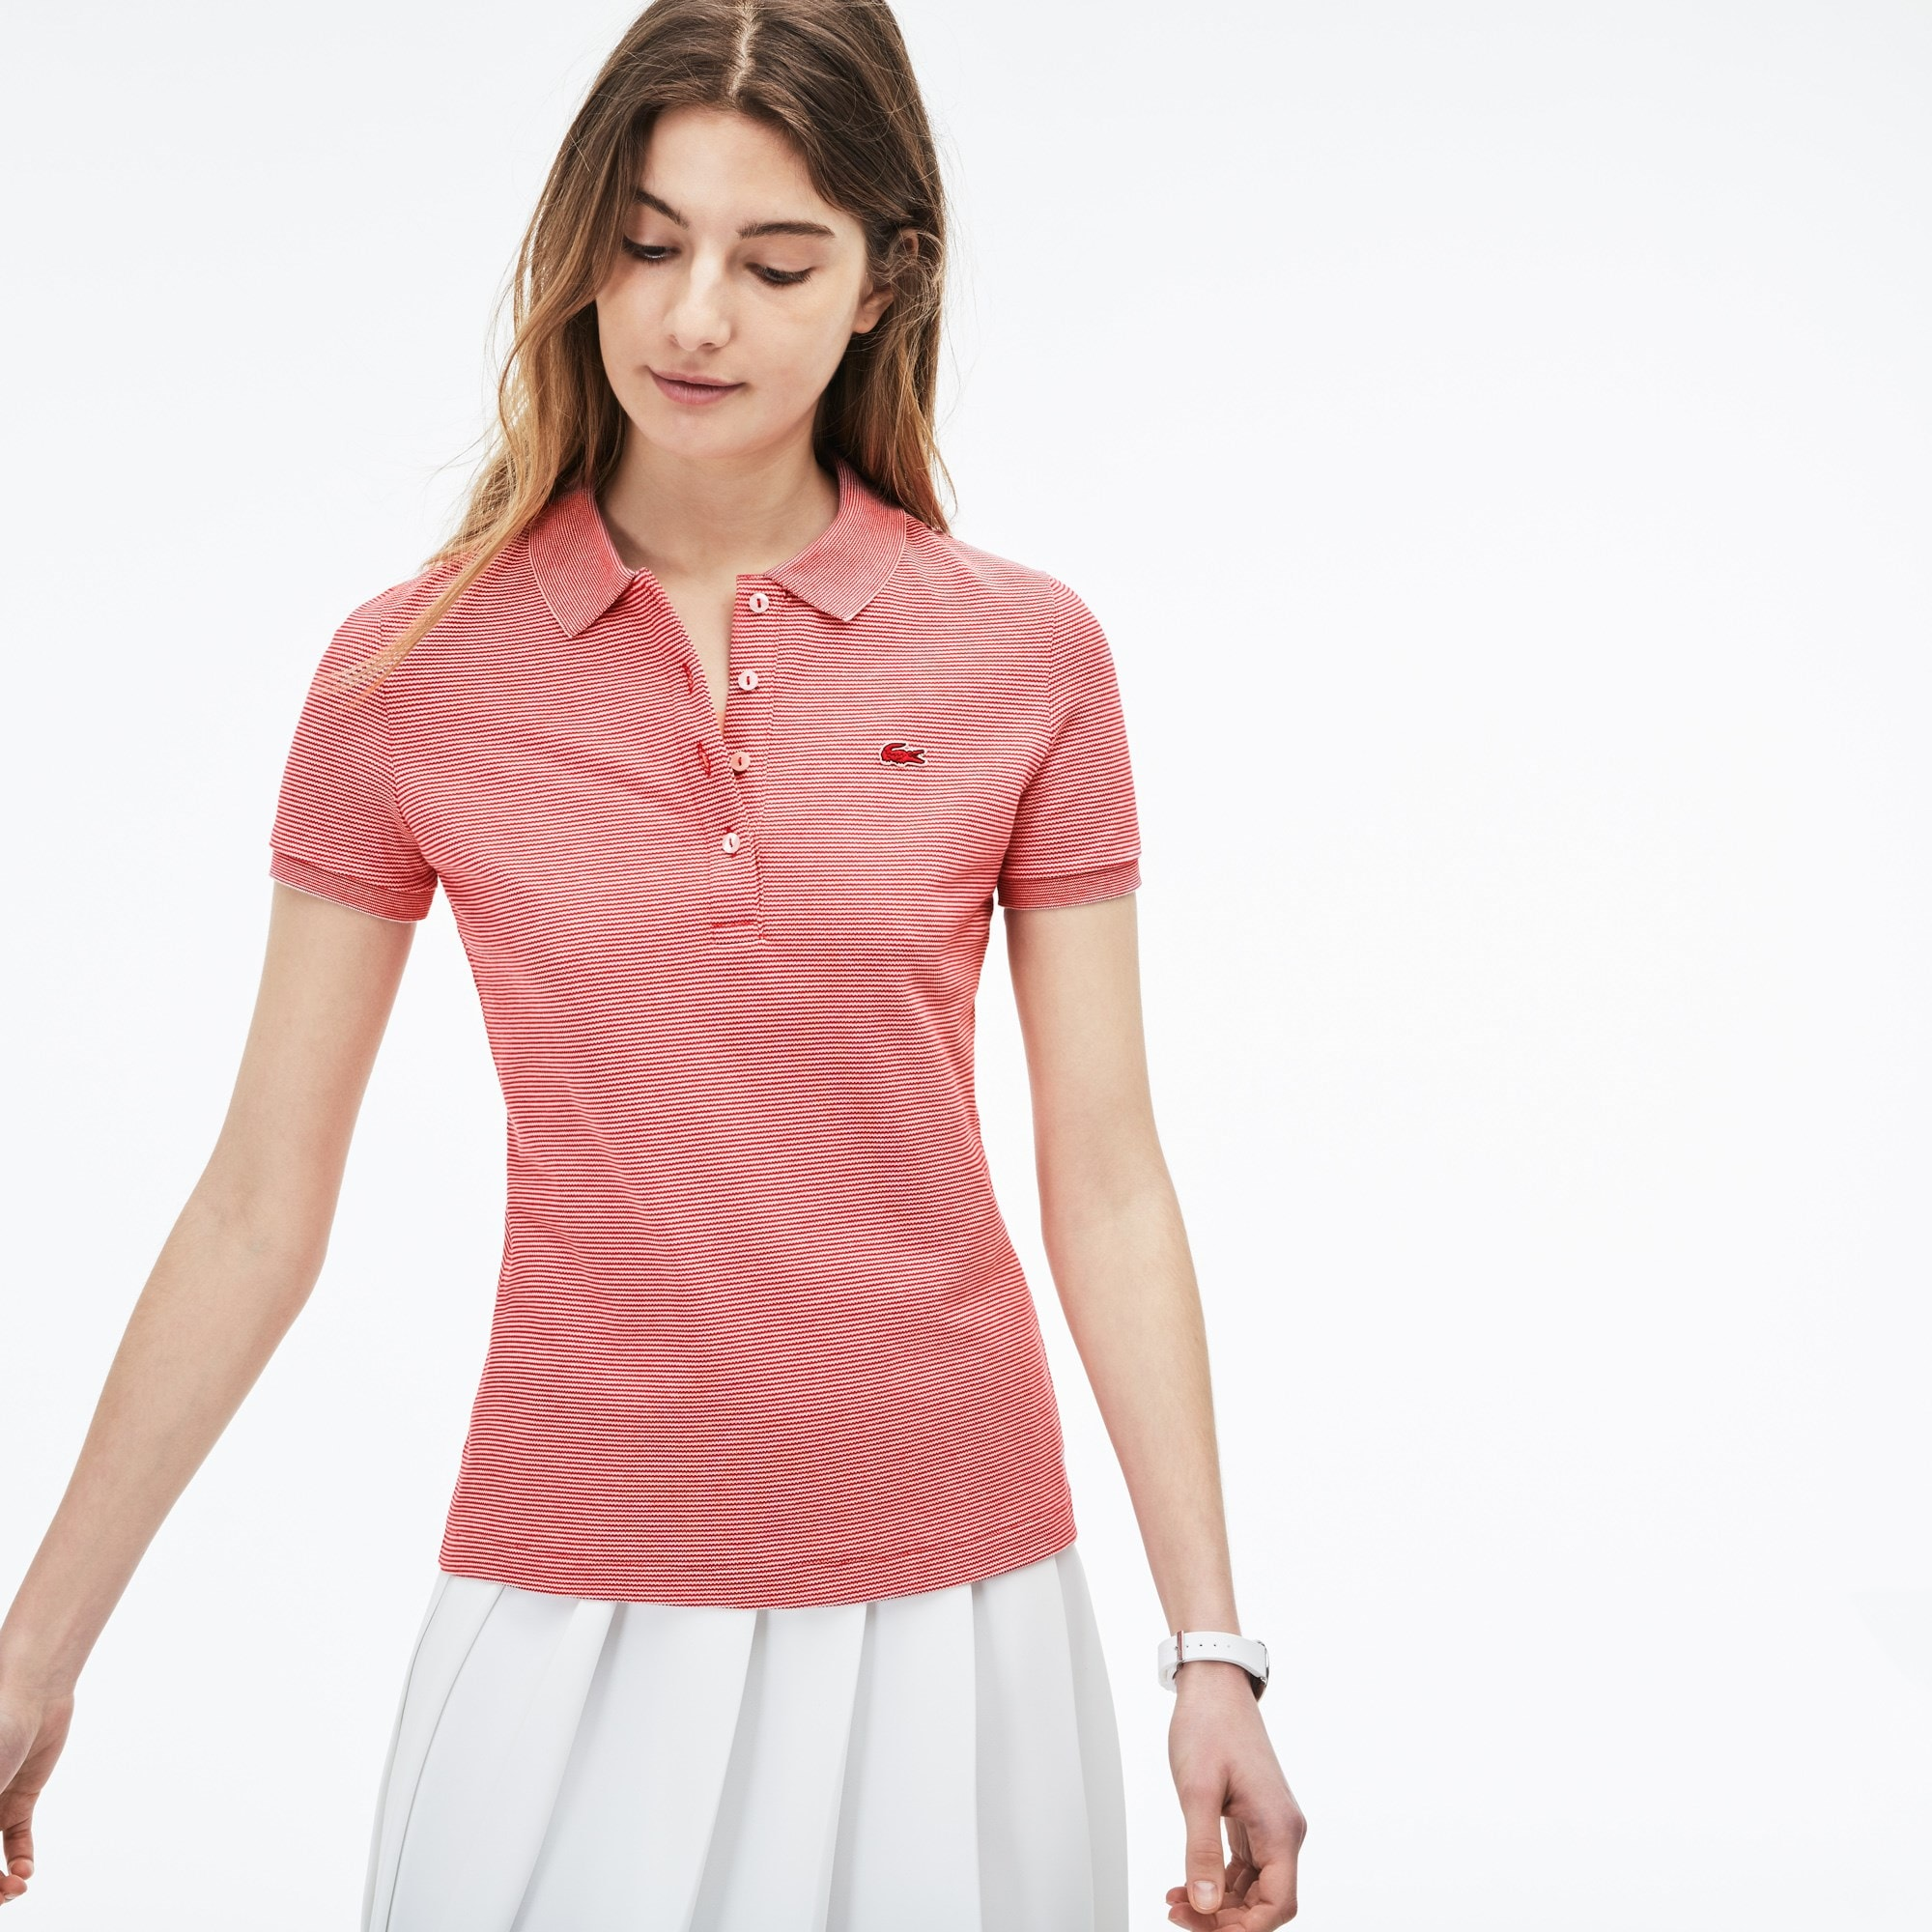 Slim Fit Damen-Polo aus gestreiftem Stretch-Mini-Piqué LACOSTE